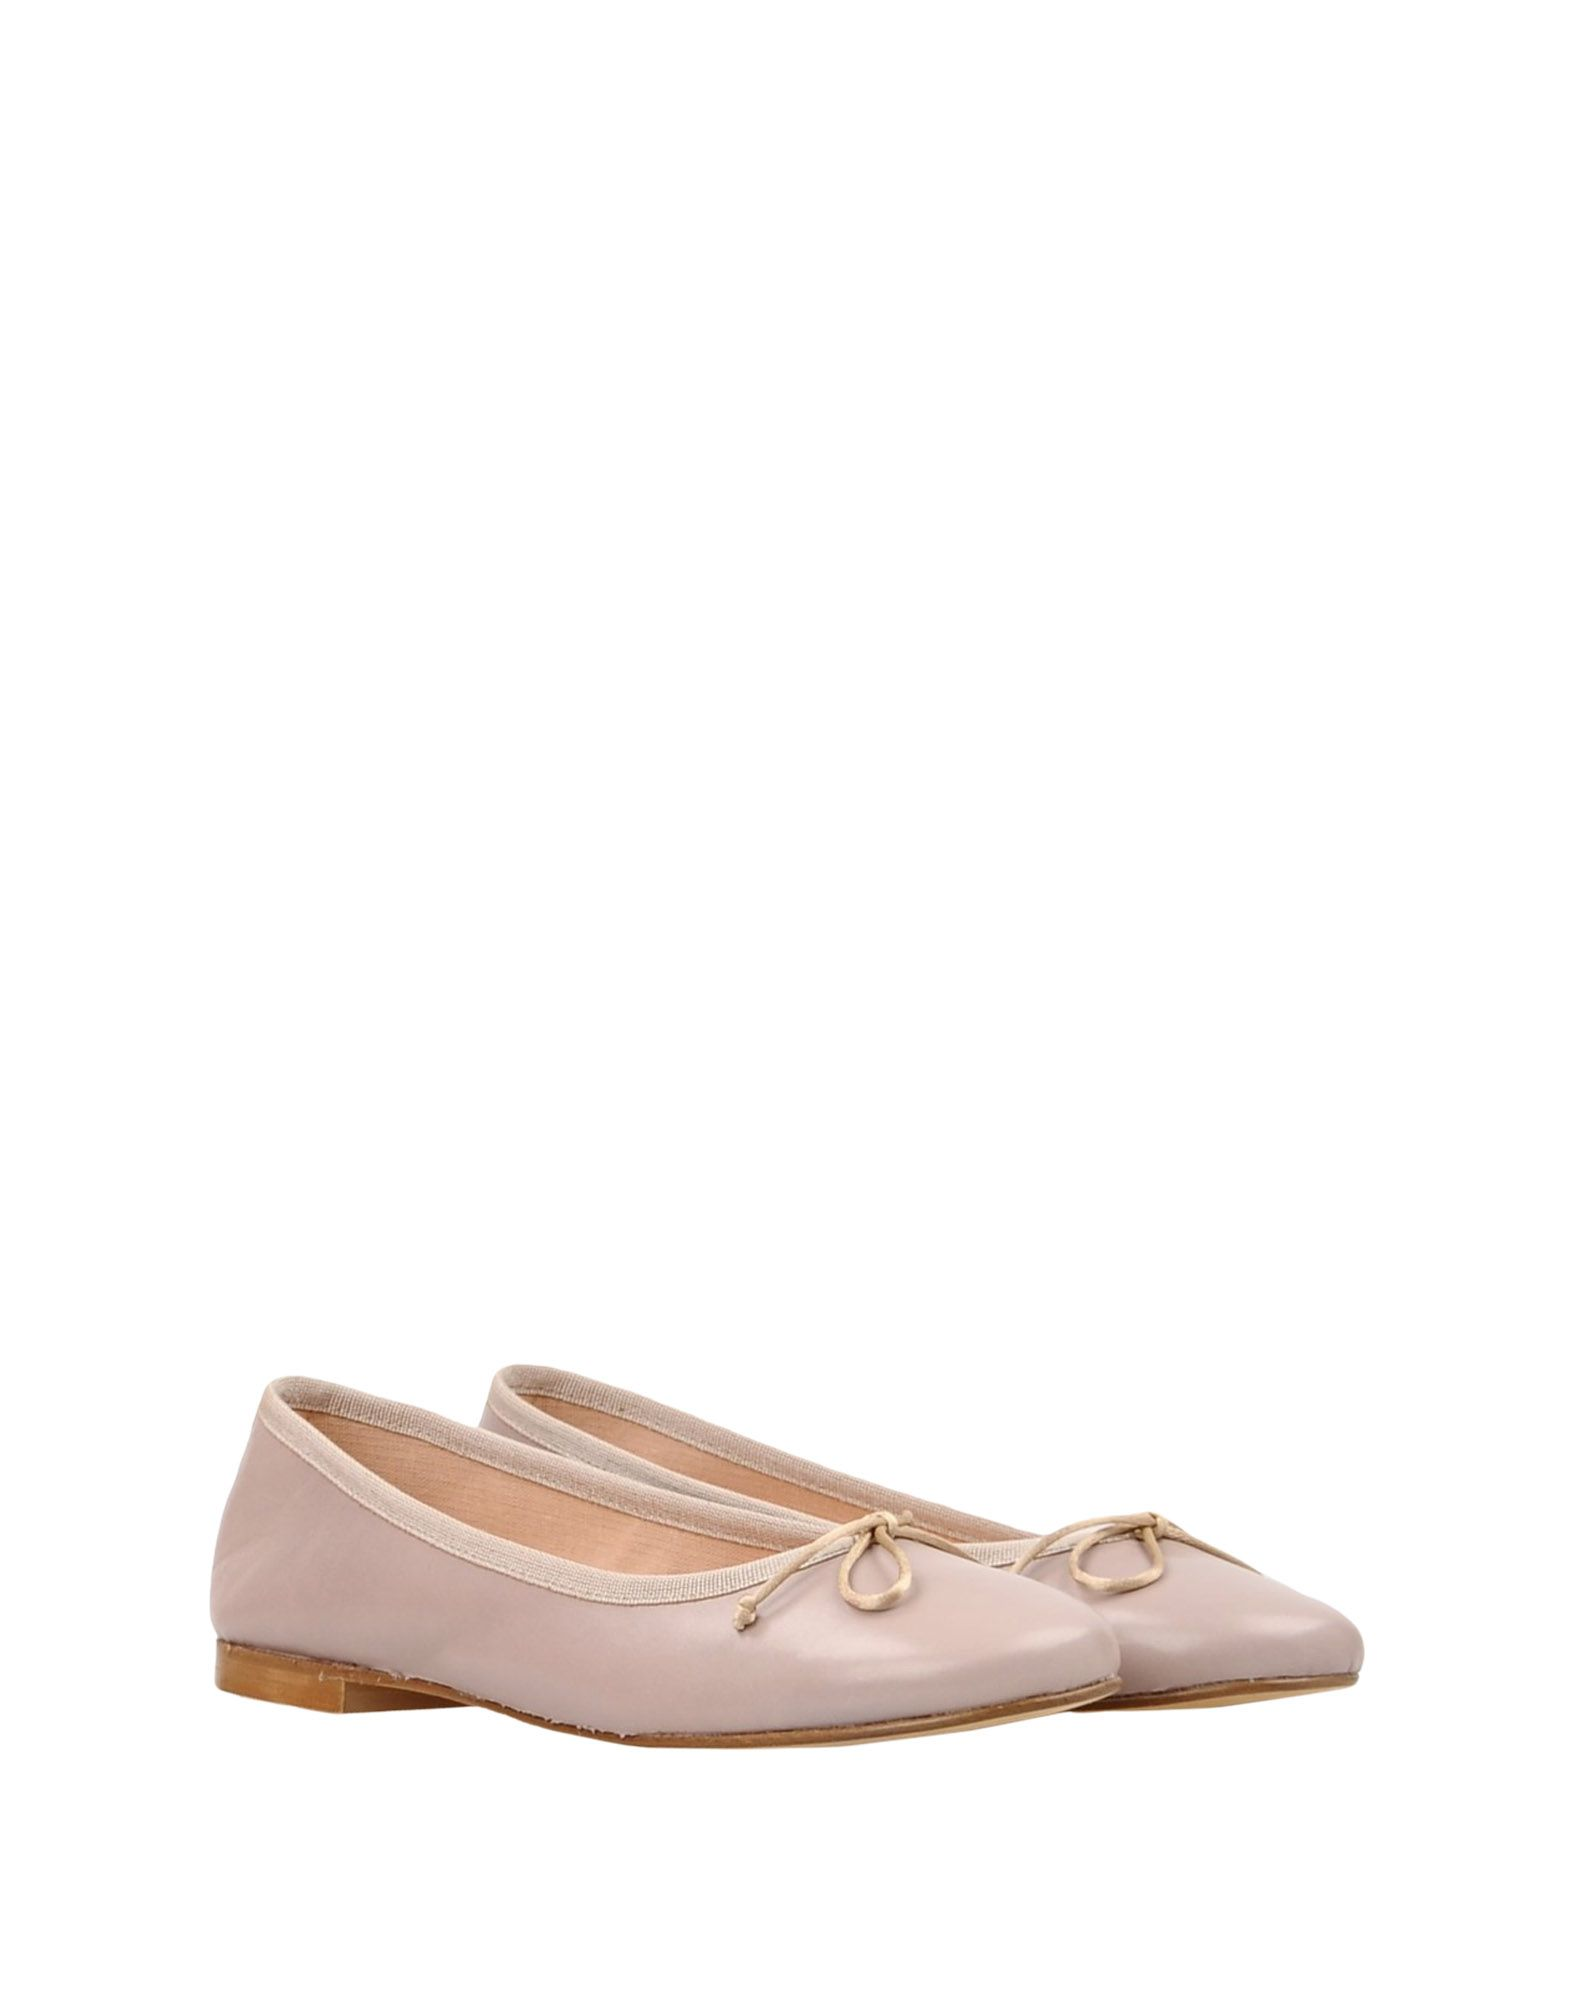 Ballerines George J. Love Femme - Ballerines George J. Love sur